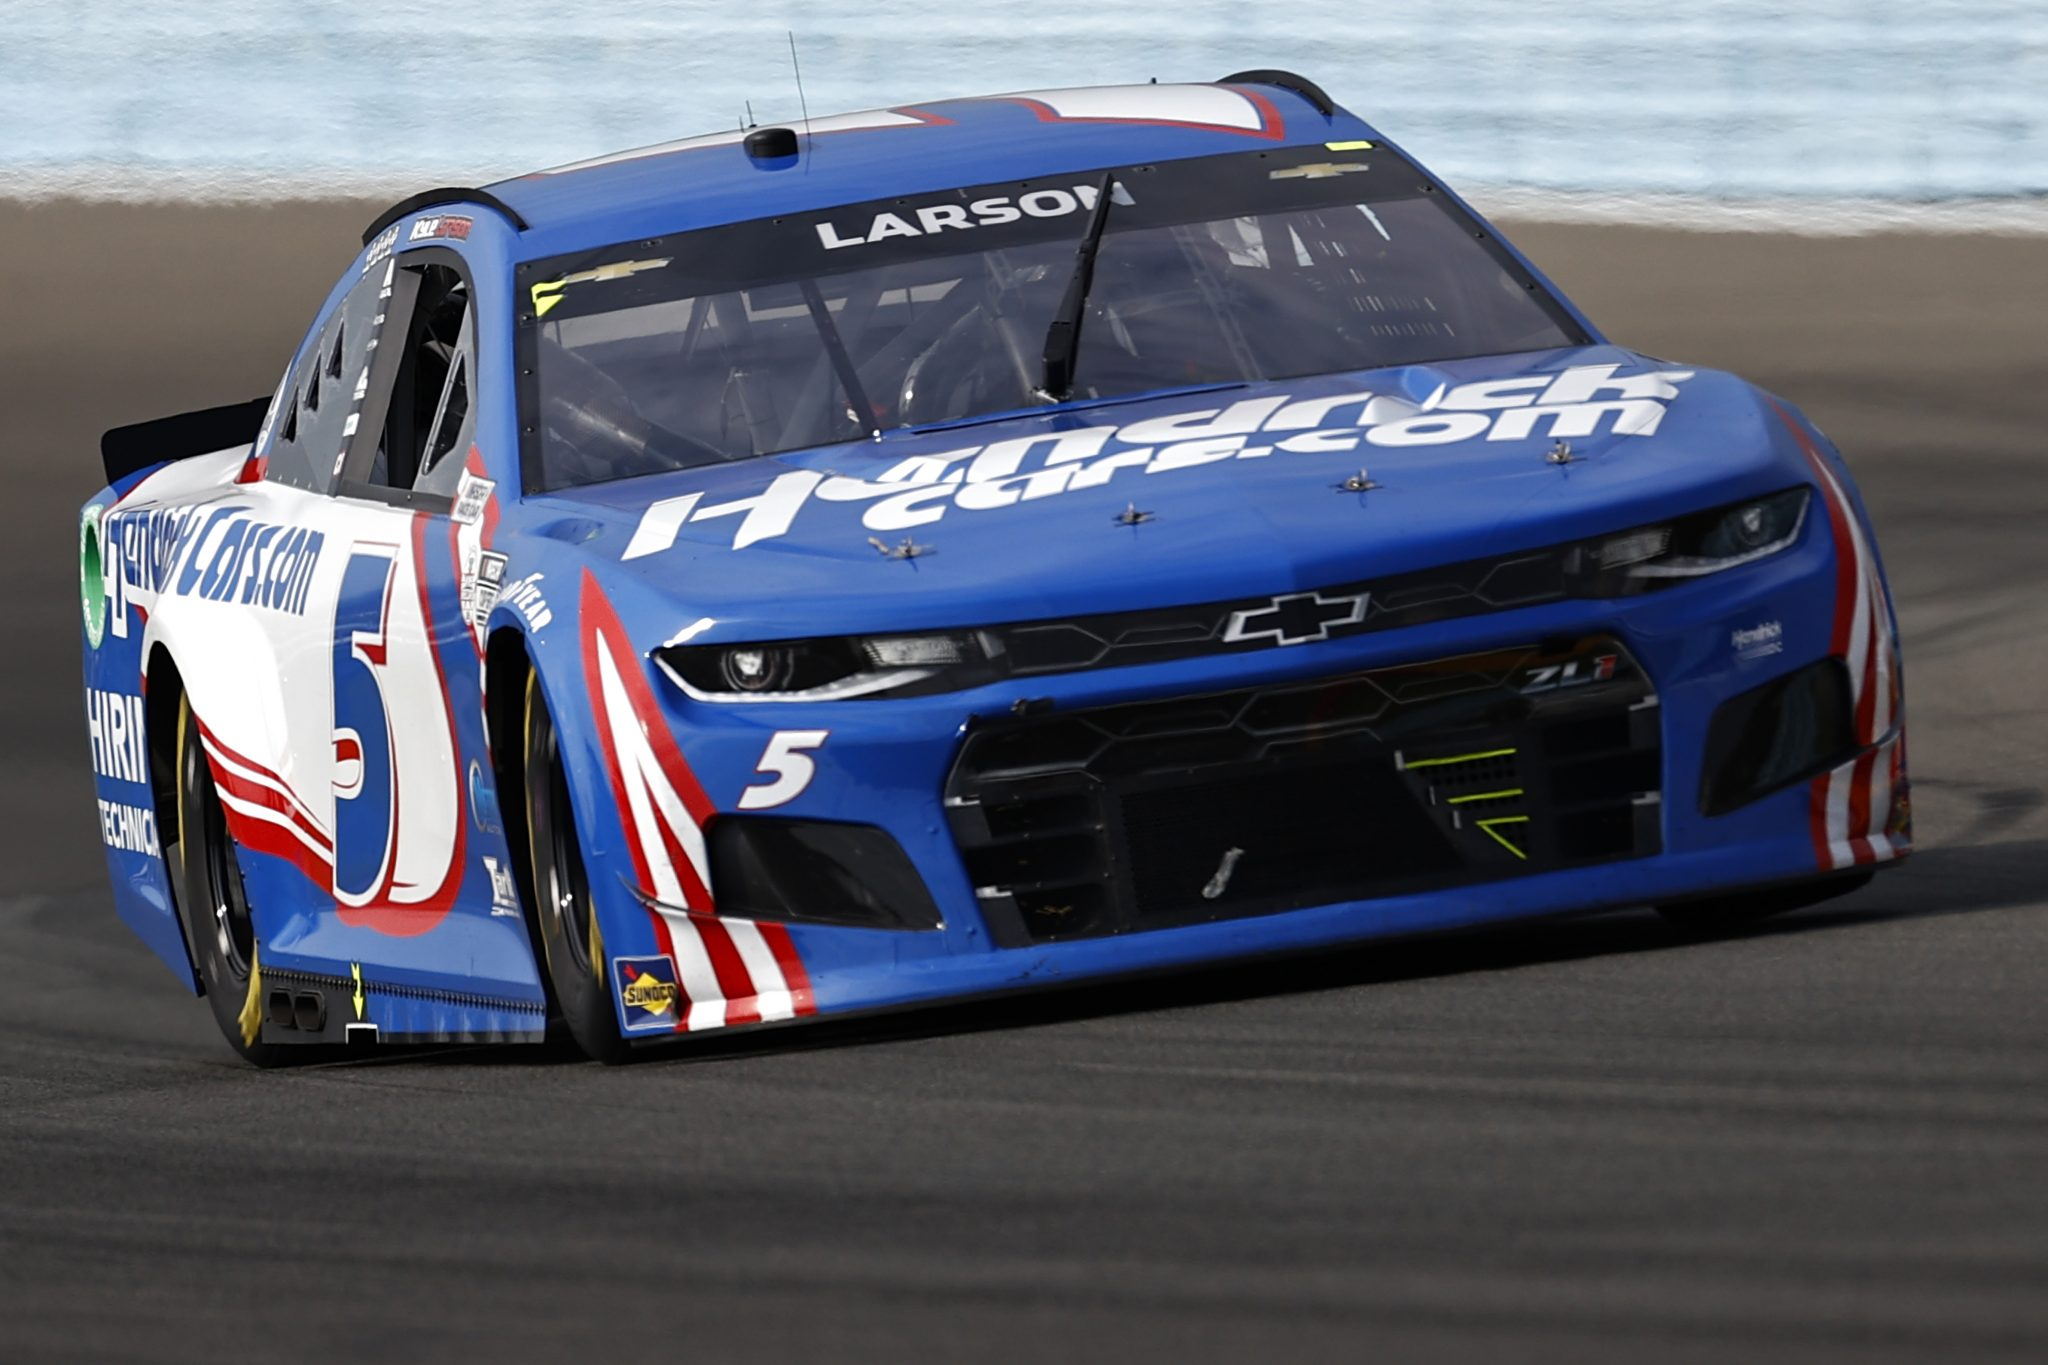 WATKINS GLEN, NEW YORK - AUGUST 08: Kyle Larson, driver of the #5 HendrickCars.com Chevrolet, drives during the NASCAR Cup Series Go Bowling at The Glen at Watkins Glen International on August 08, 2021 in Watkins Glen, New York. (Photo by Jared C. Tilton/Getty Images) | Getty Images